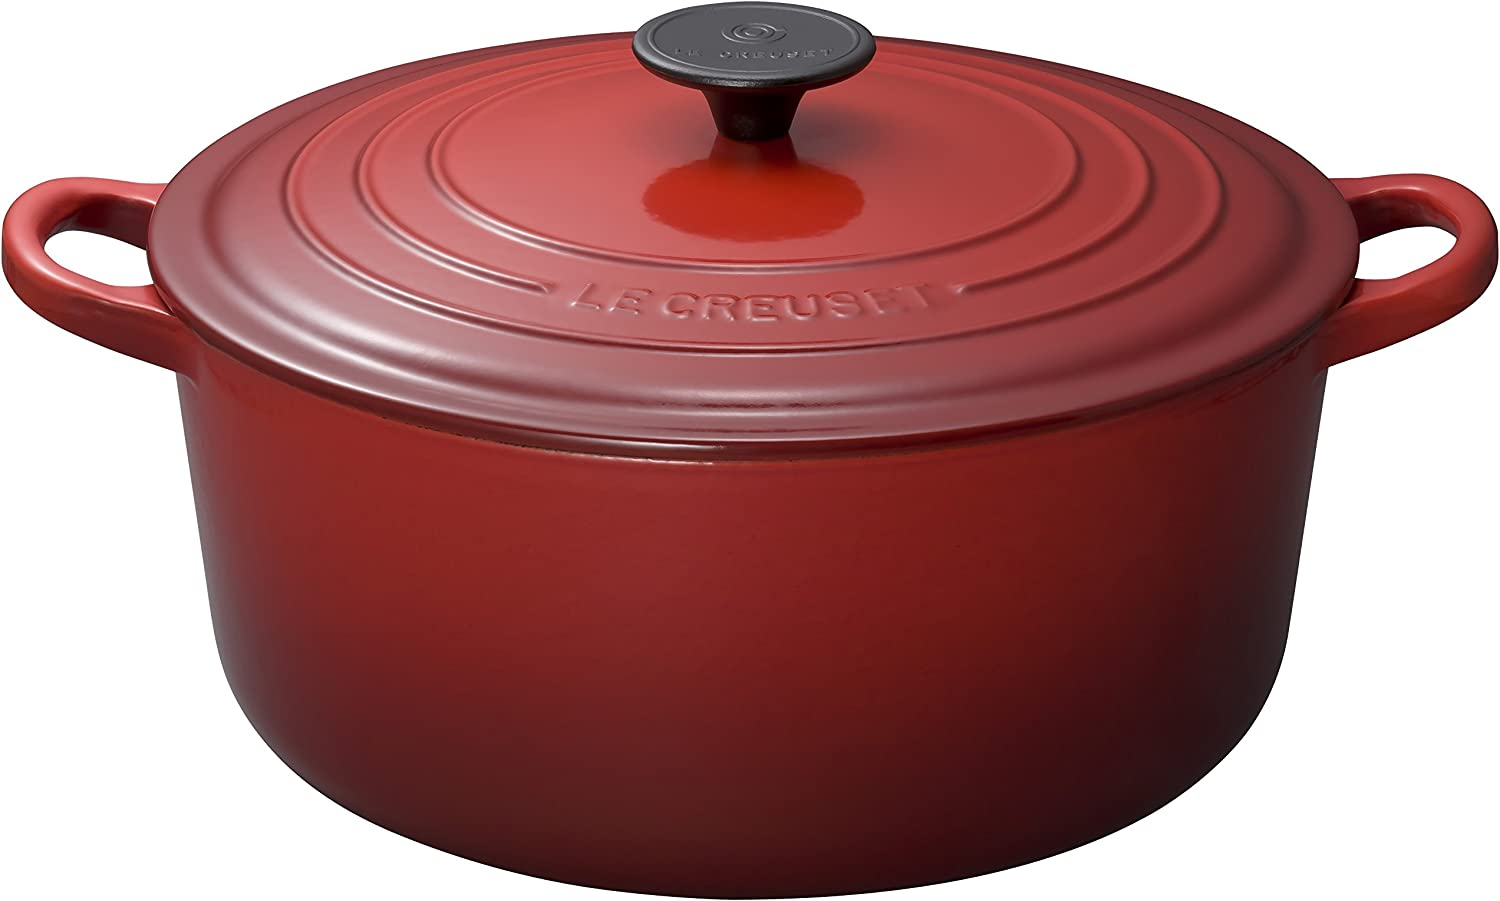 Le Creuset Enameled Cast-Iron 9-Quart Round French Oven, Red